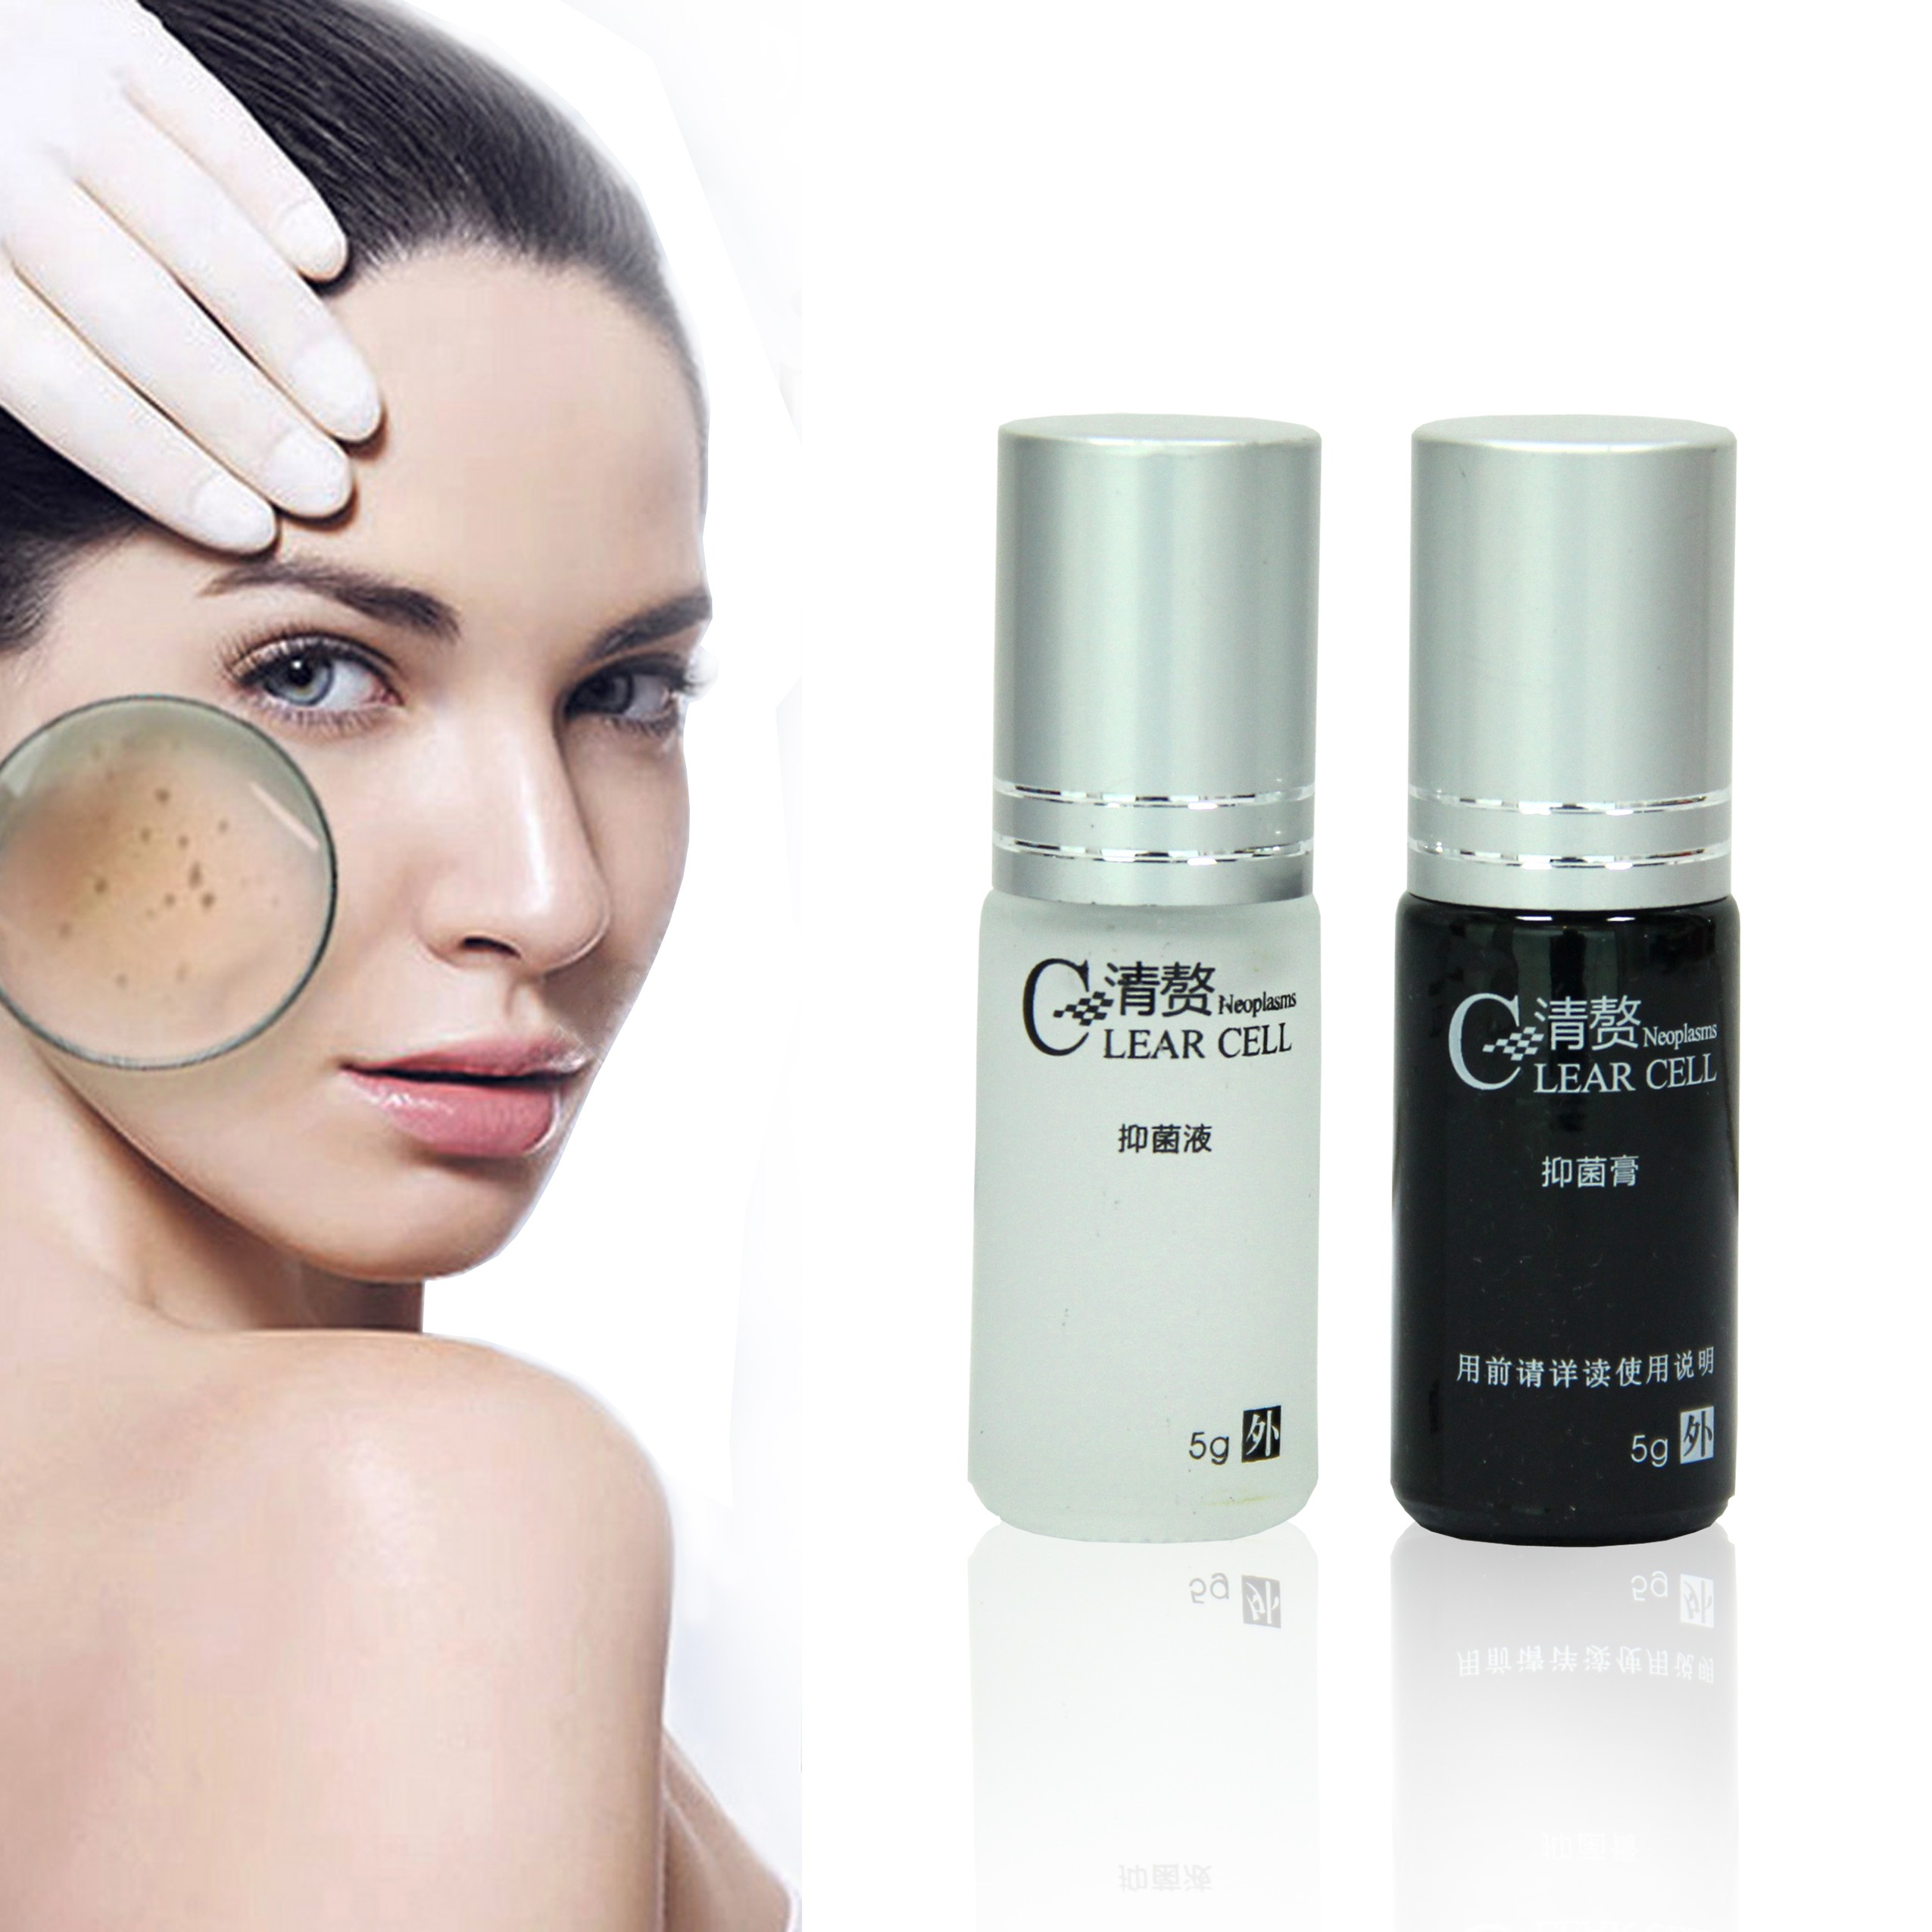 Wart, Mole and Skin Tag Remover with Skin Rejuvenation Essence by U-Style